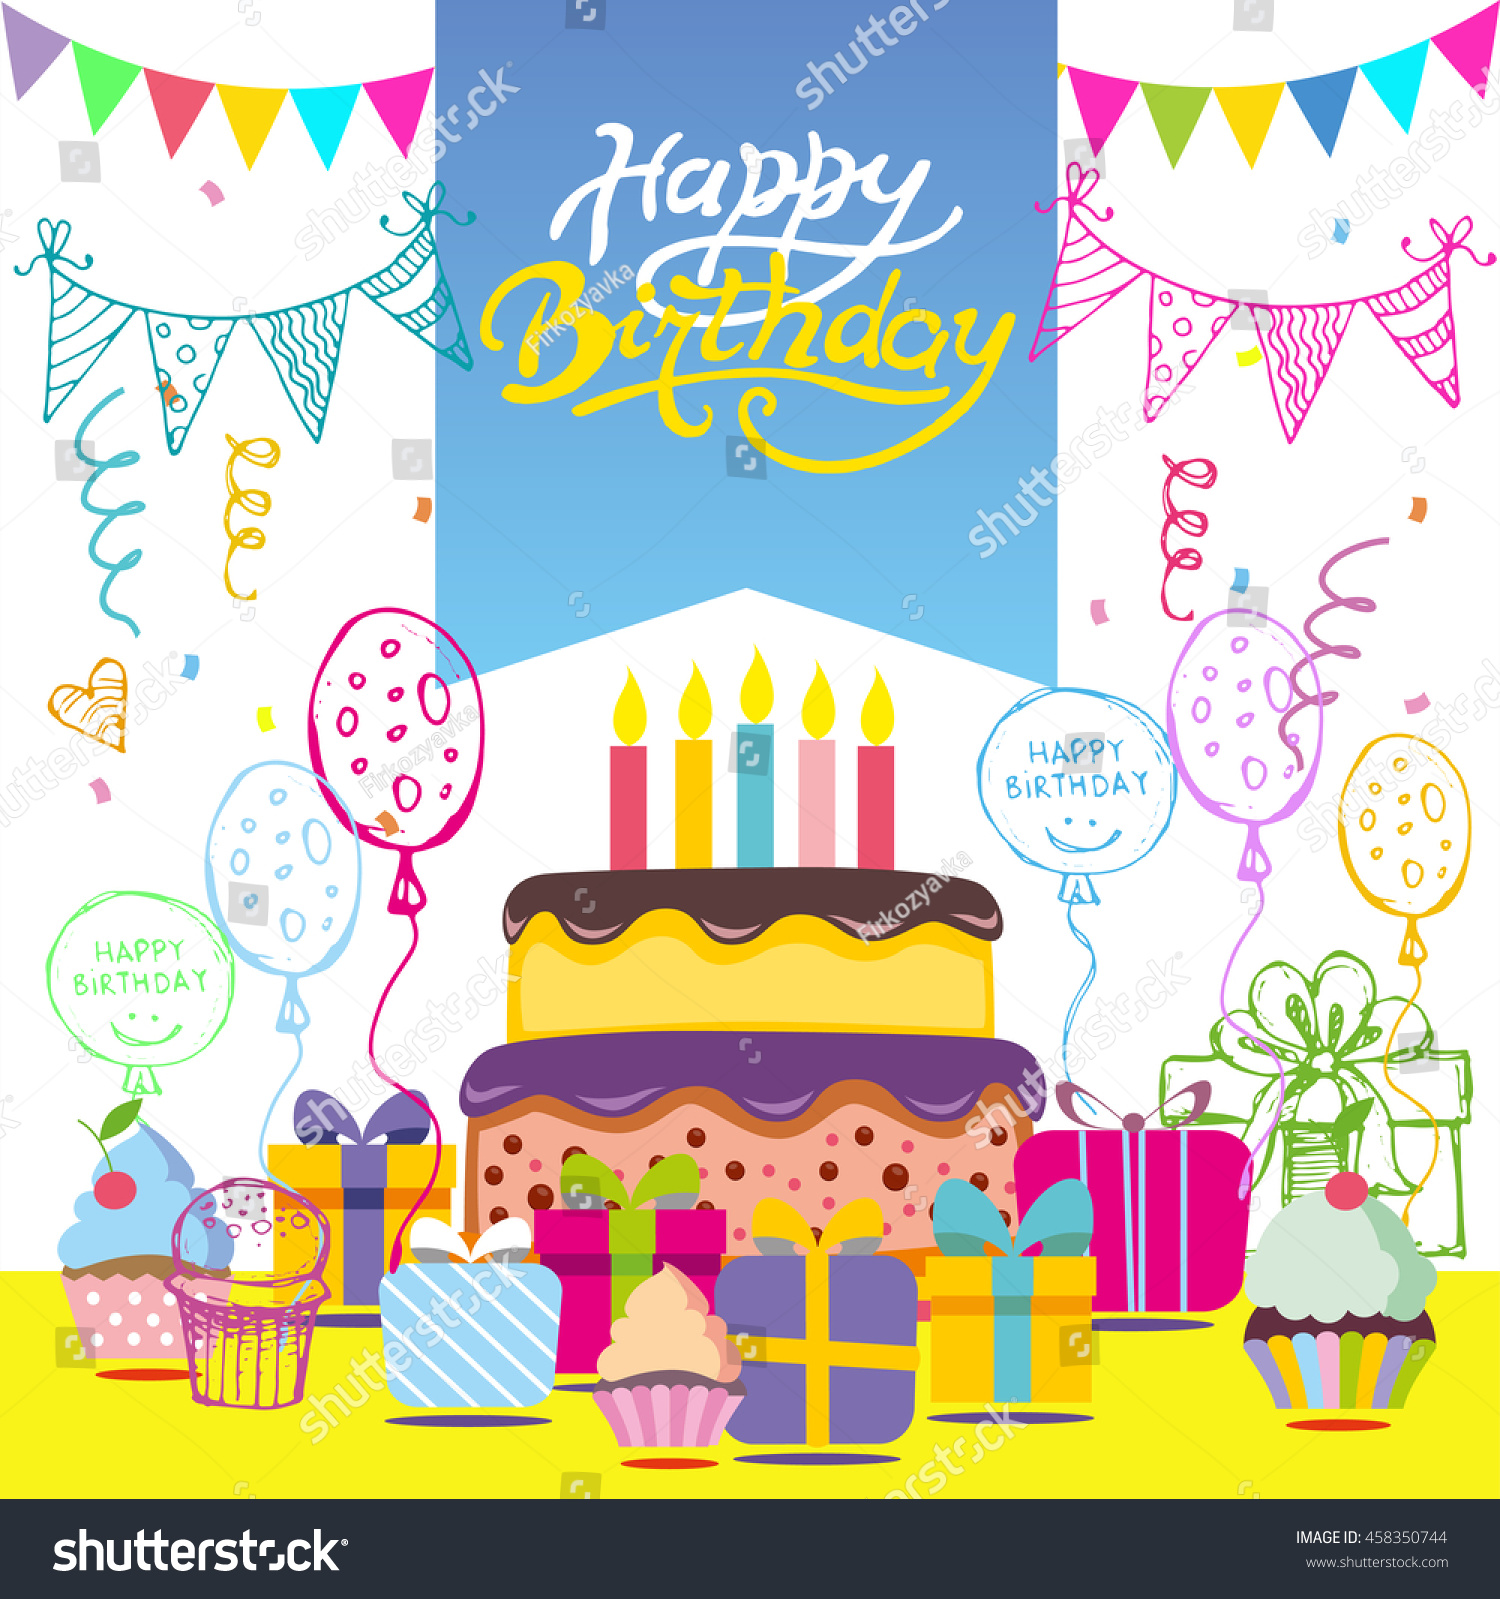 Happy Birthday Vector Card Hand Drawn Illustration Invitation Template Design